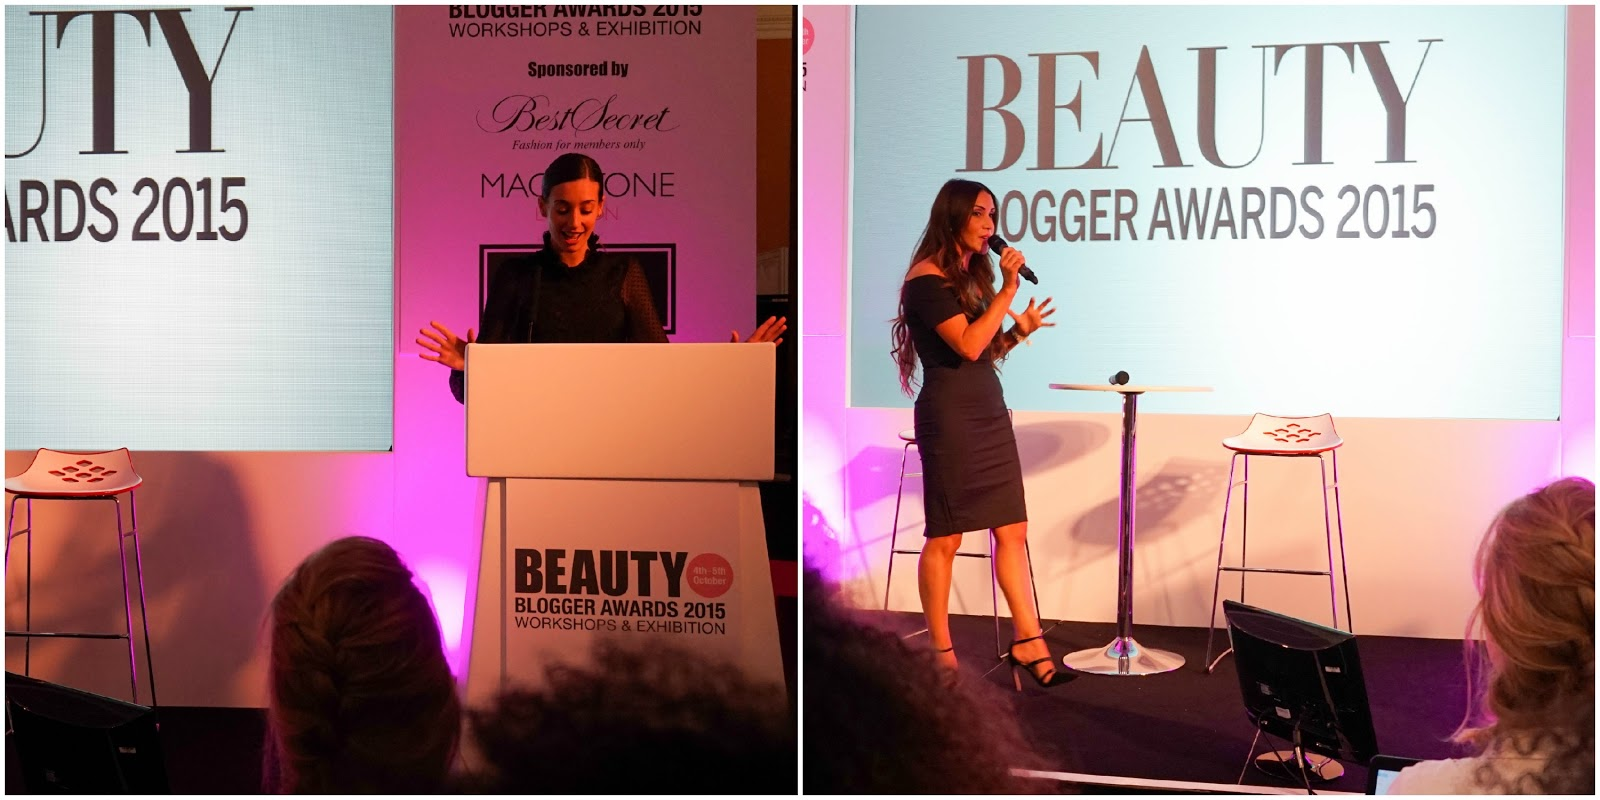 Beauty Blogger Awards & Olympia Beauty 2015